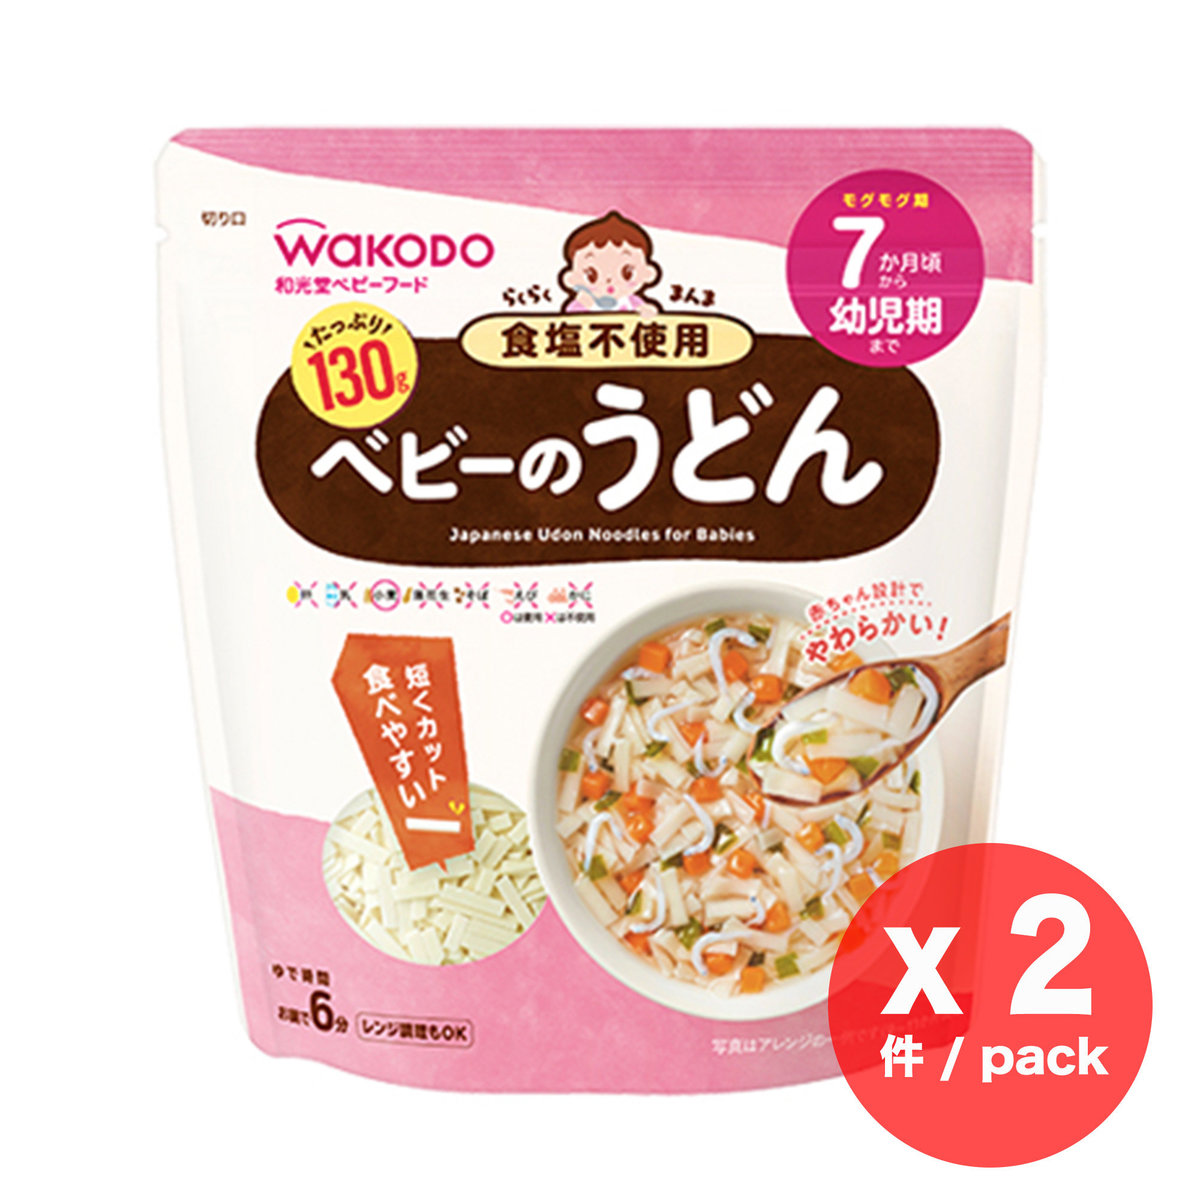 Wakodo Japanese Udon Noodles for Babies (New Packing) 130g x 2 pack